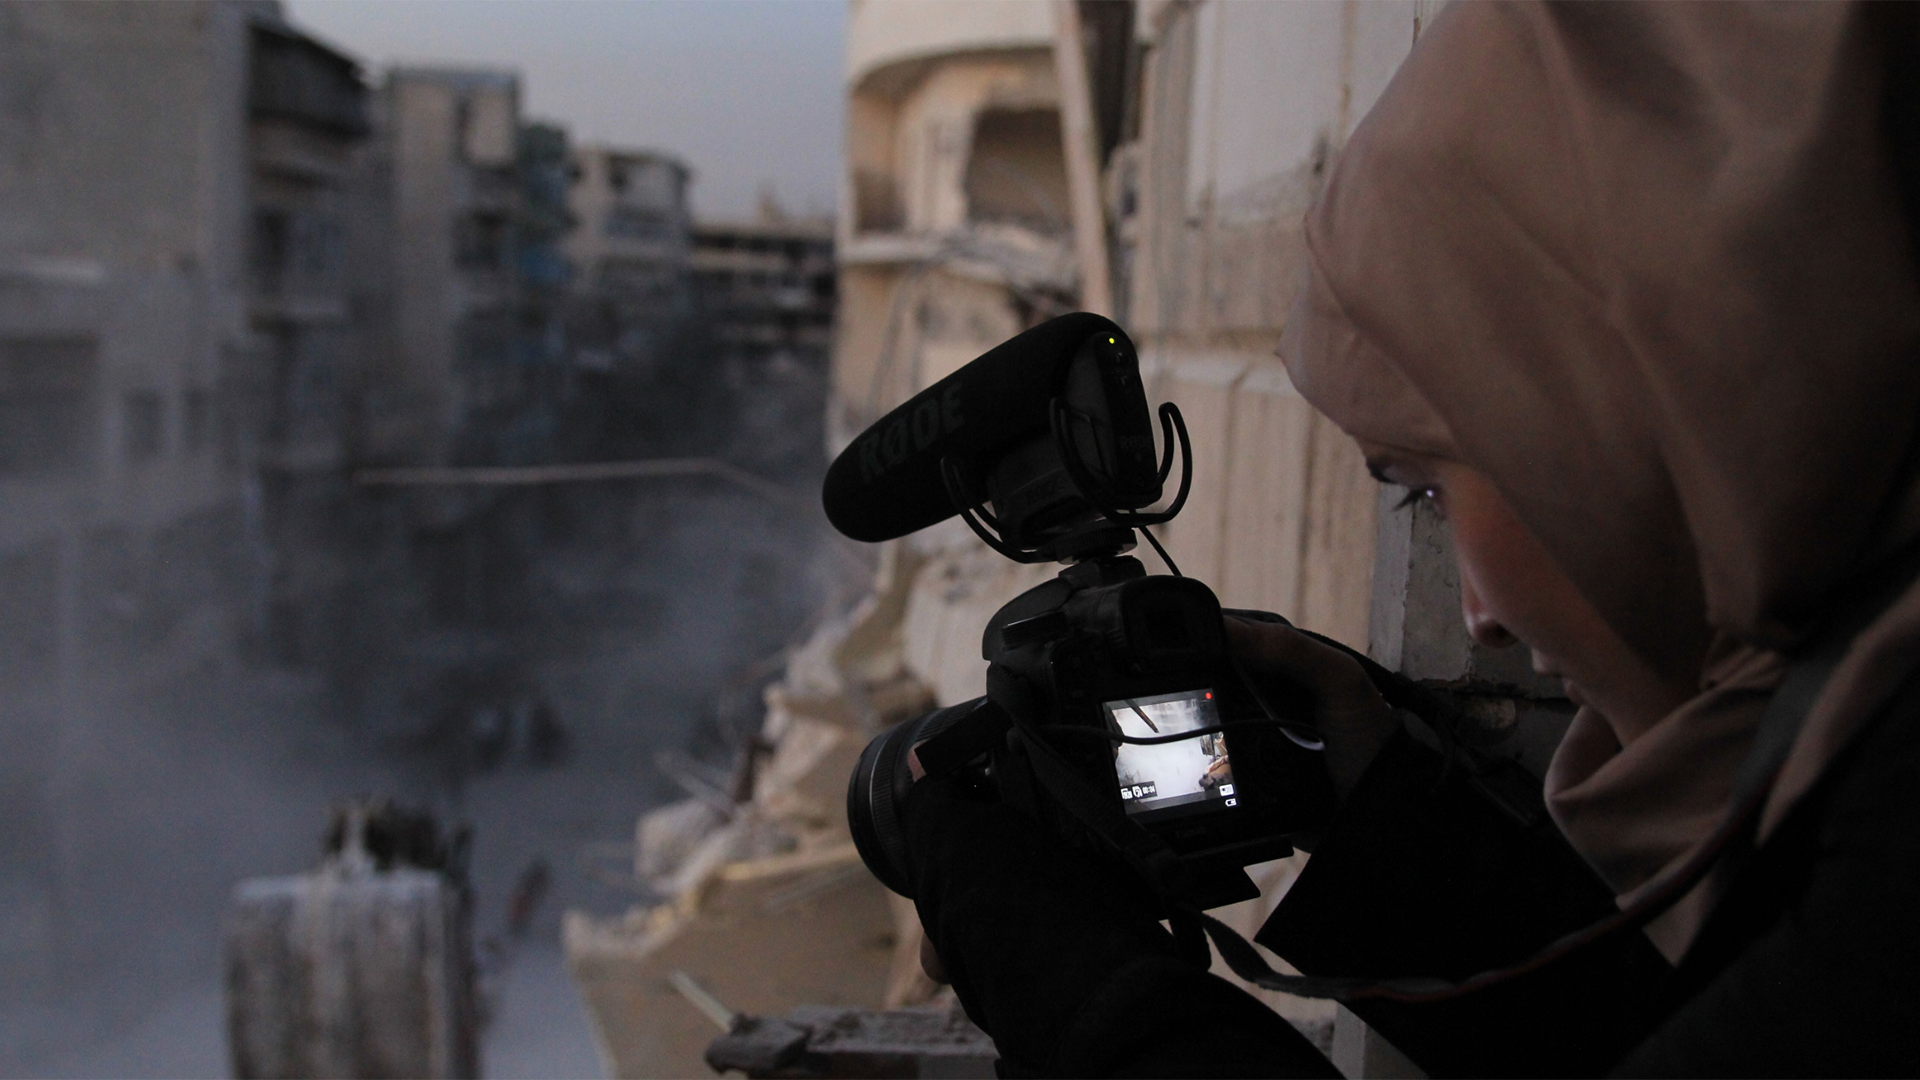 Waad al-Kateab filming the ruins of a building destroyed by bombing in besieged east Aleppo, October 2016